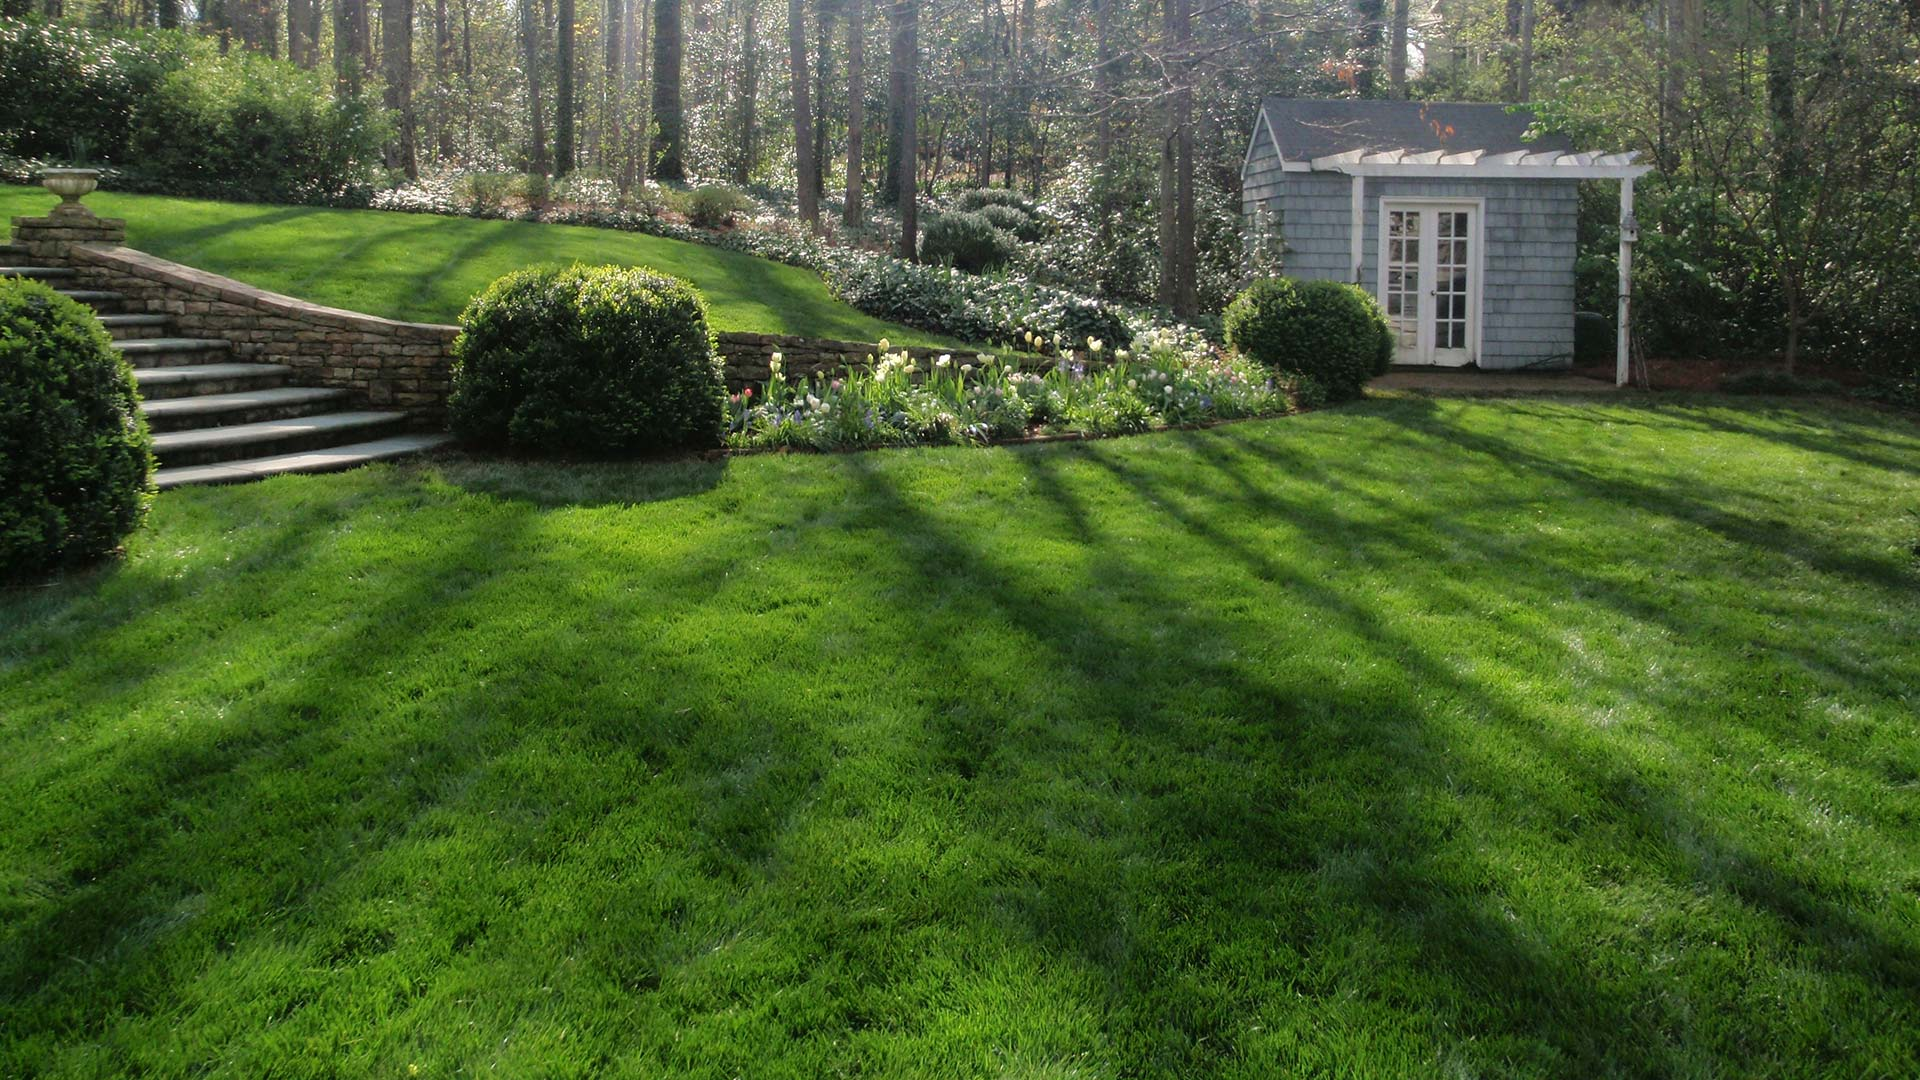 Residential backyard with recently mowed lawn and maintained landscaping in Buckhead, GA.